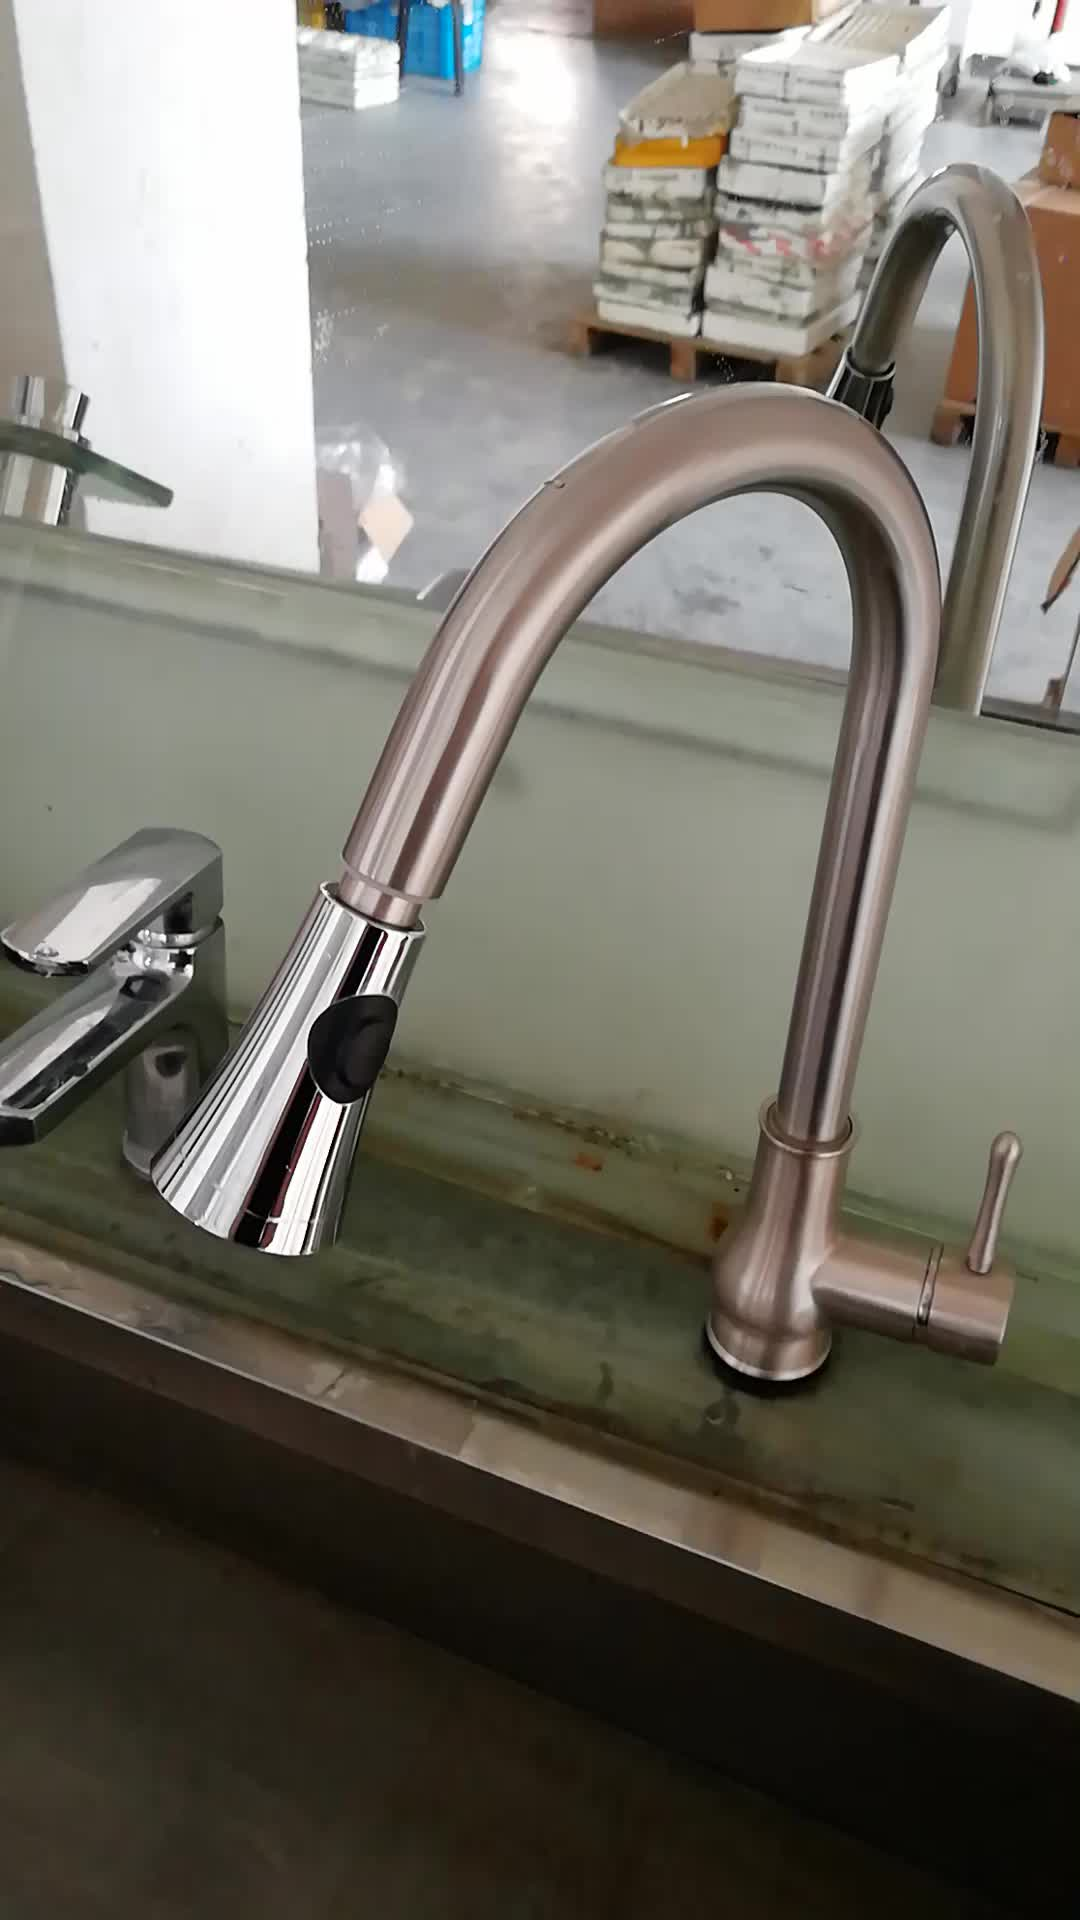 Lead free faucets Hand-touch sensor tap pull-out spray head 304 stainless steel kitchen sink mixer (SS61)